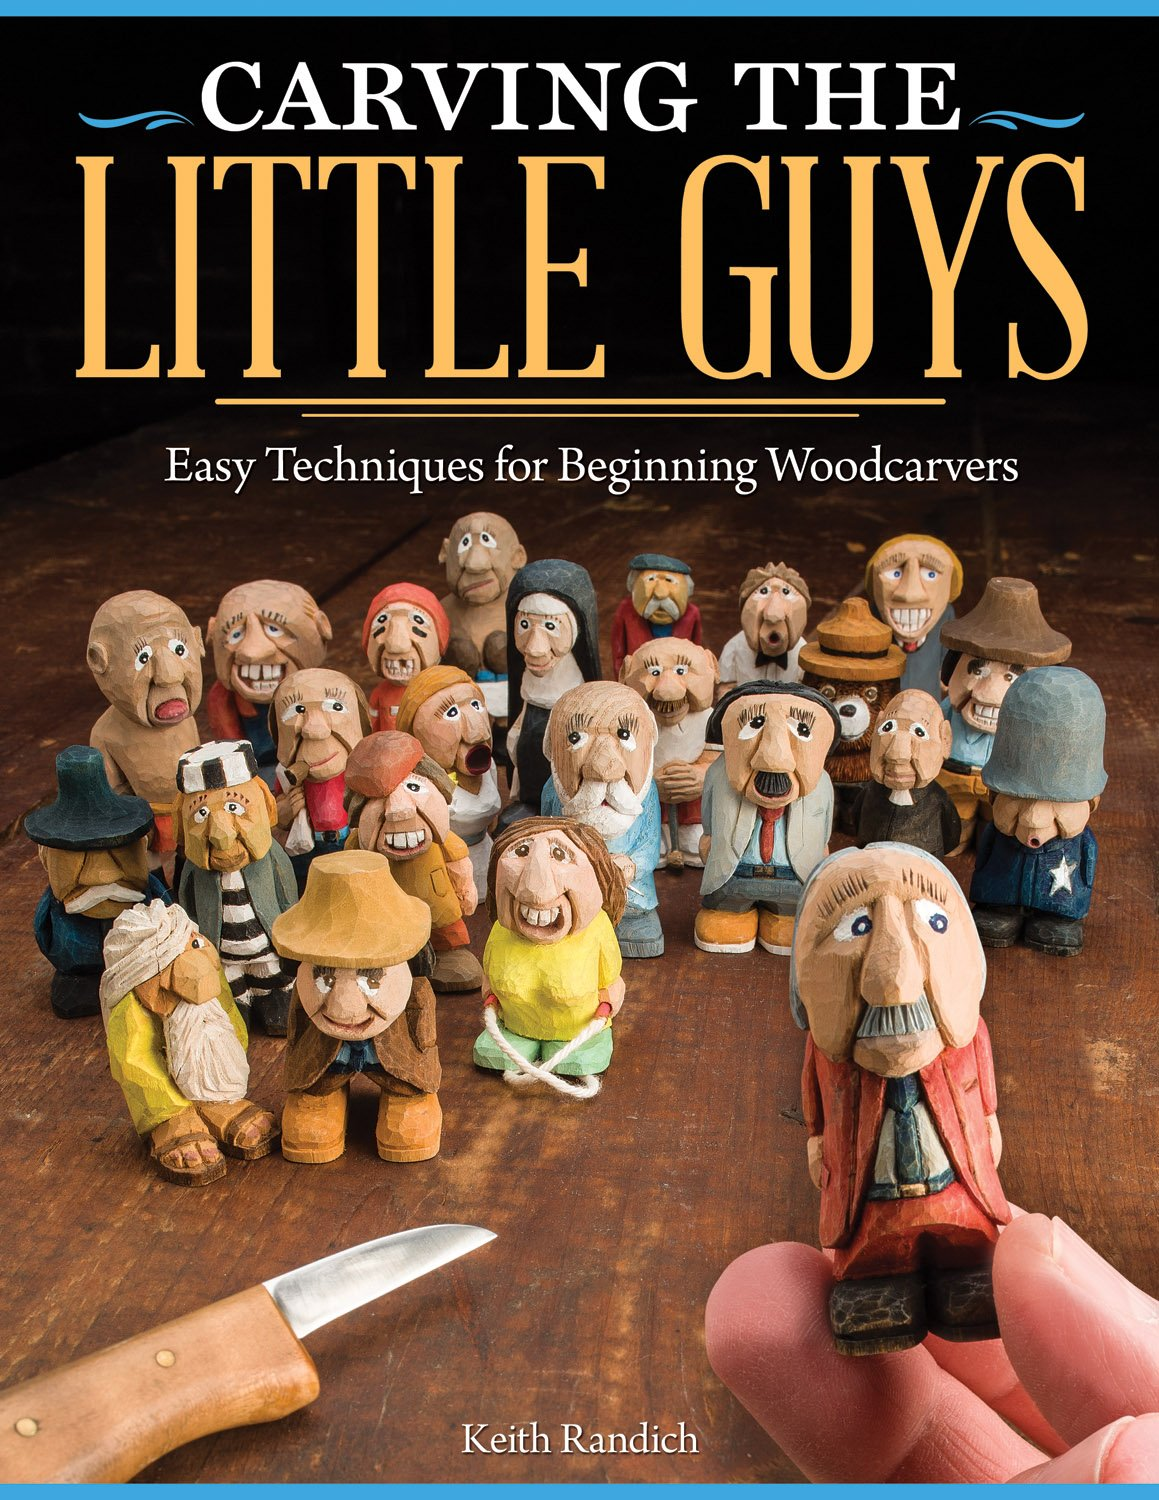 Carving the Little Guys: Easy Techniques for Beginning Woodcarvers (Fox Chapel Publishing) Skill-Building Introduction to the Art of Caricature Carving: Wood, Tools, Sharpening, Finishing, More